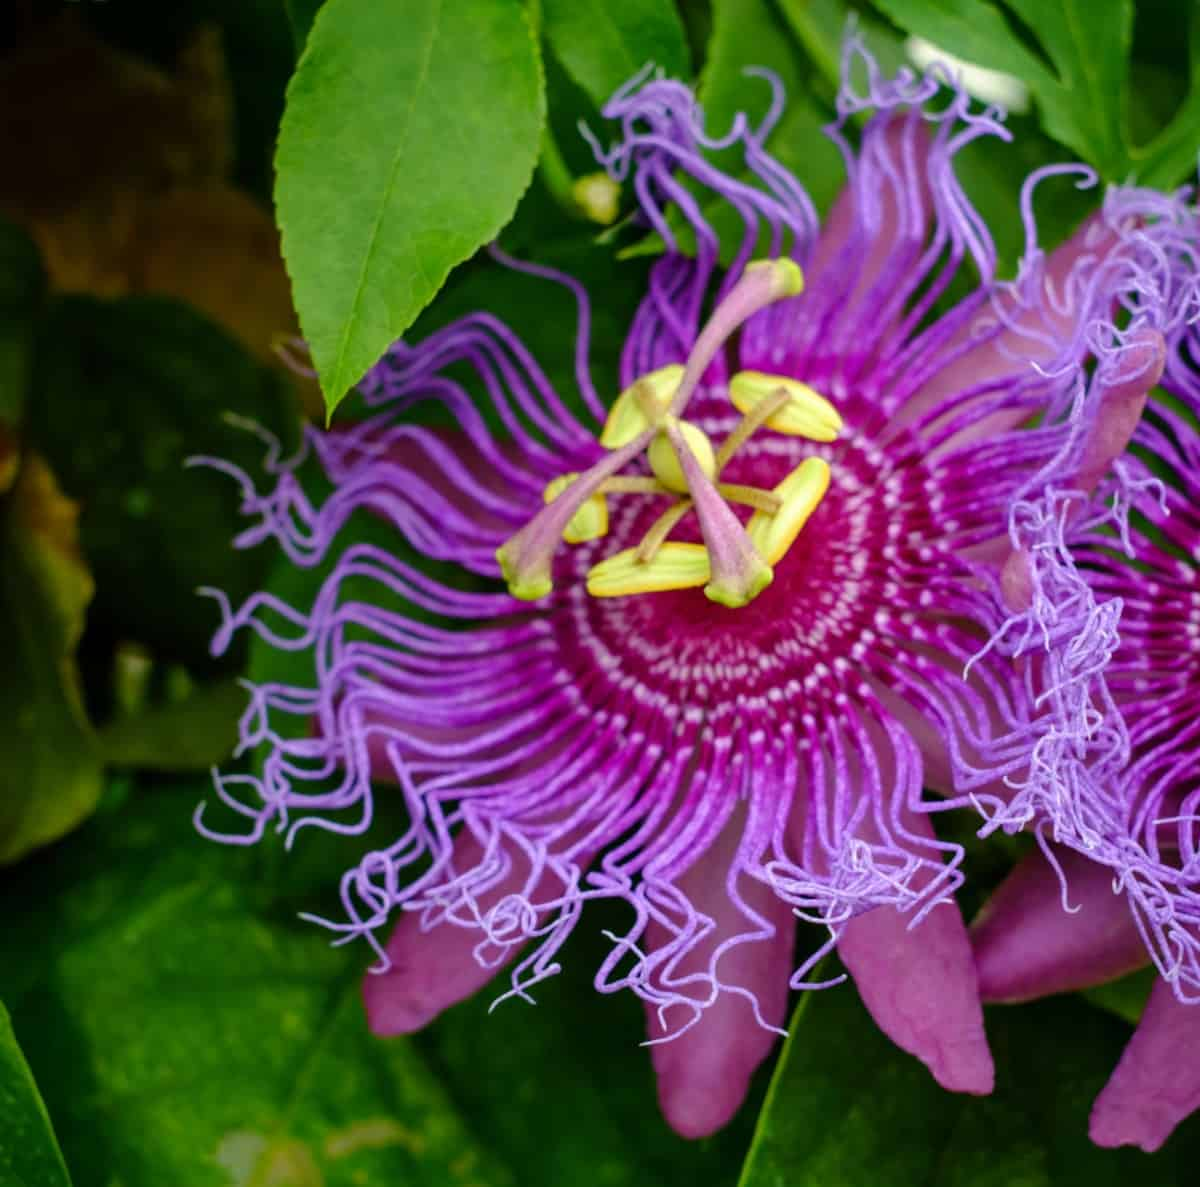 The passionflower is an unusual tropical vine.